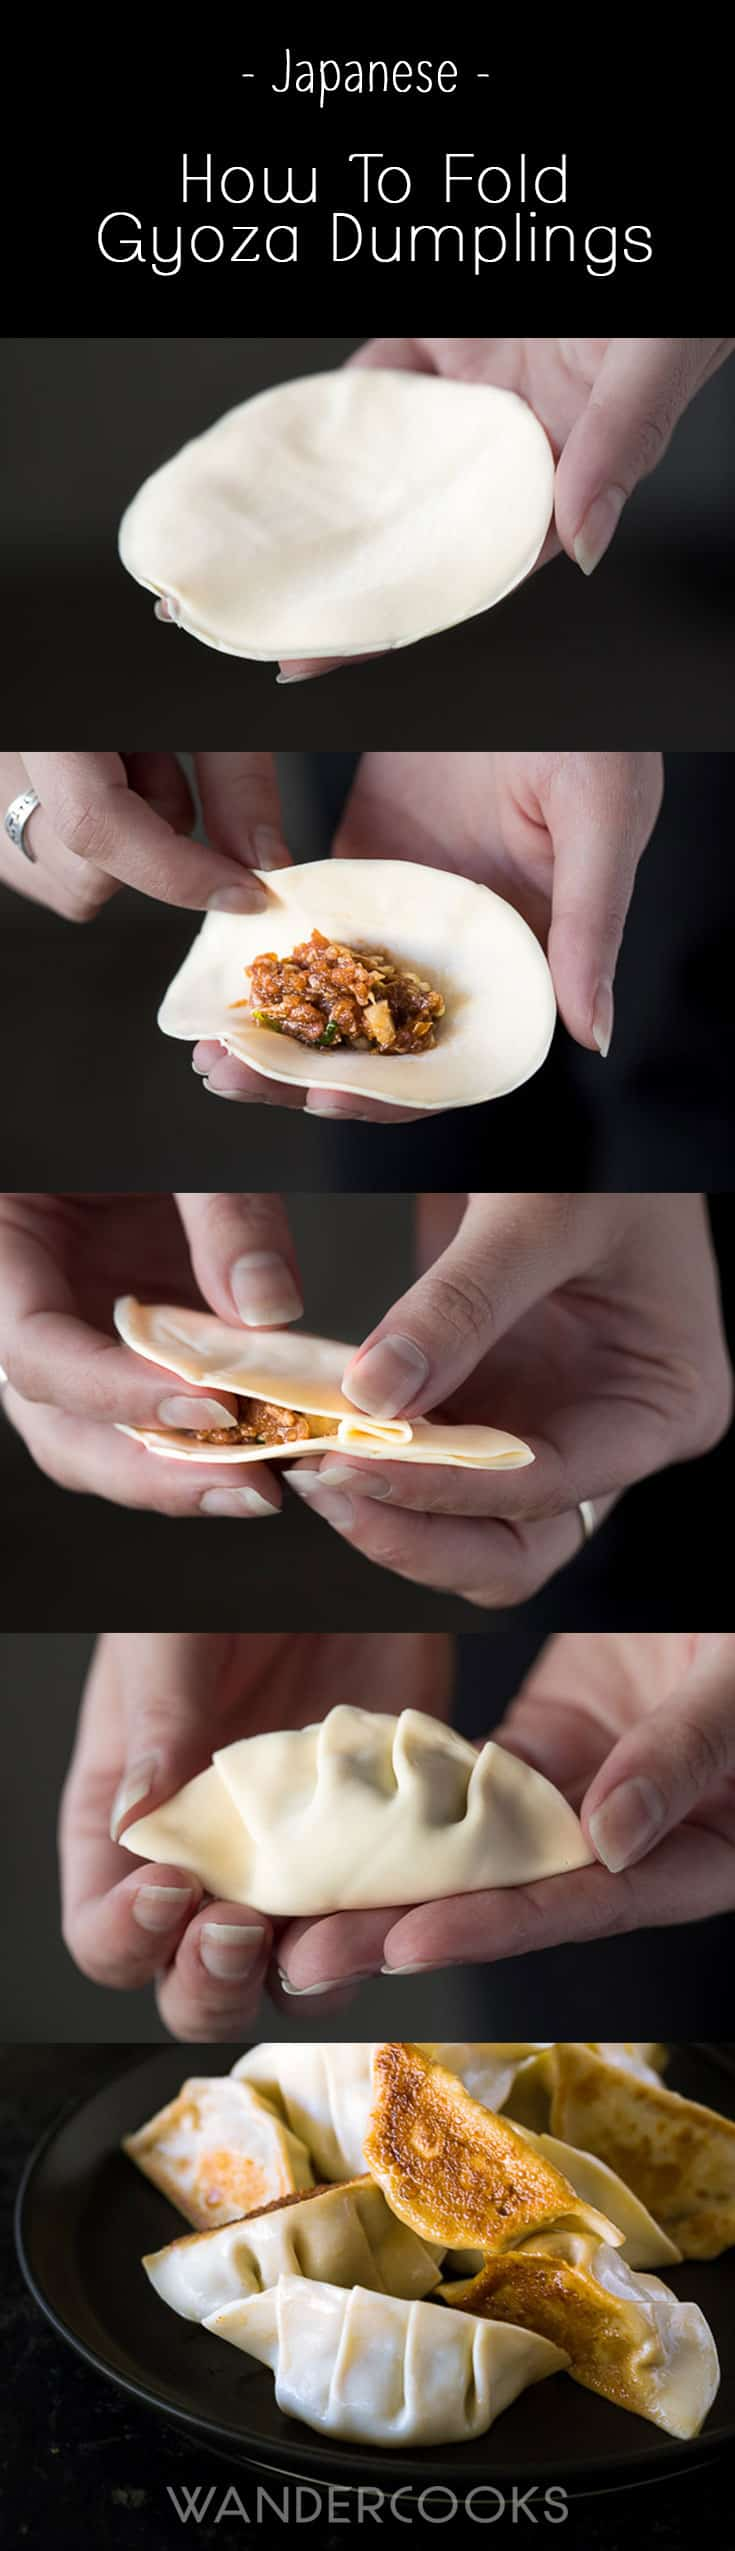 Collage of images showing how to fold pork gyoza dumplings